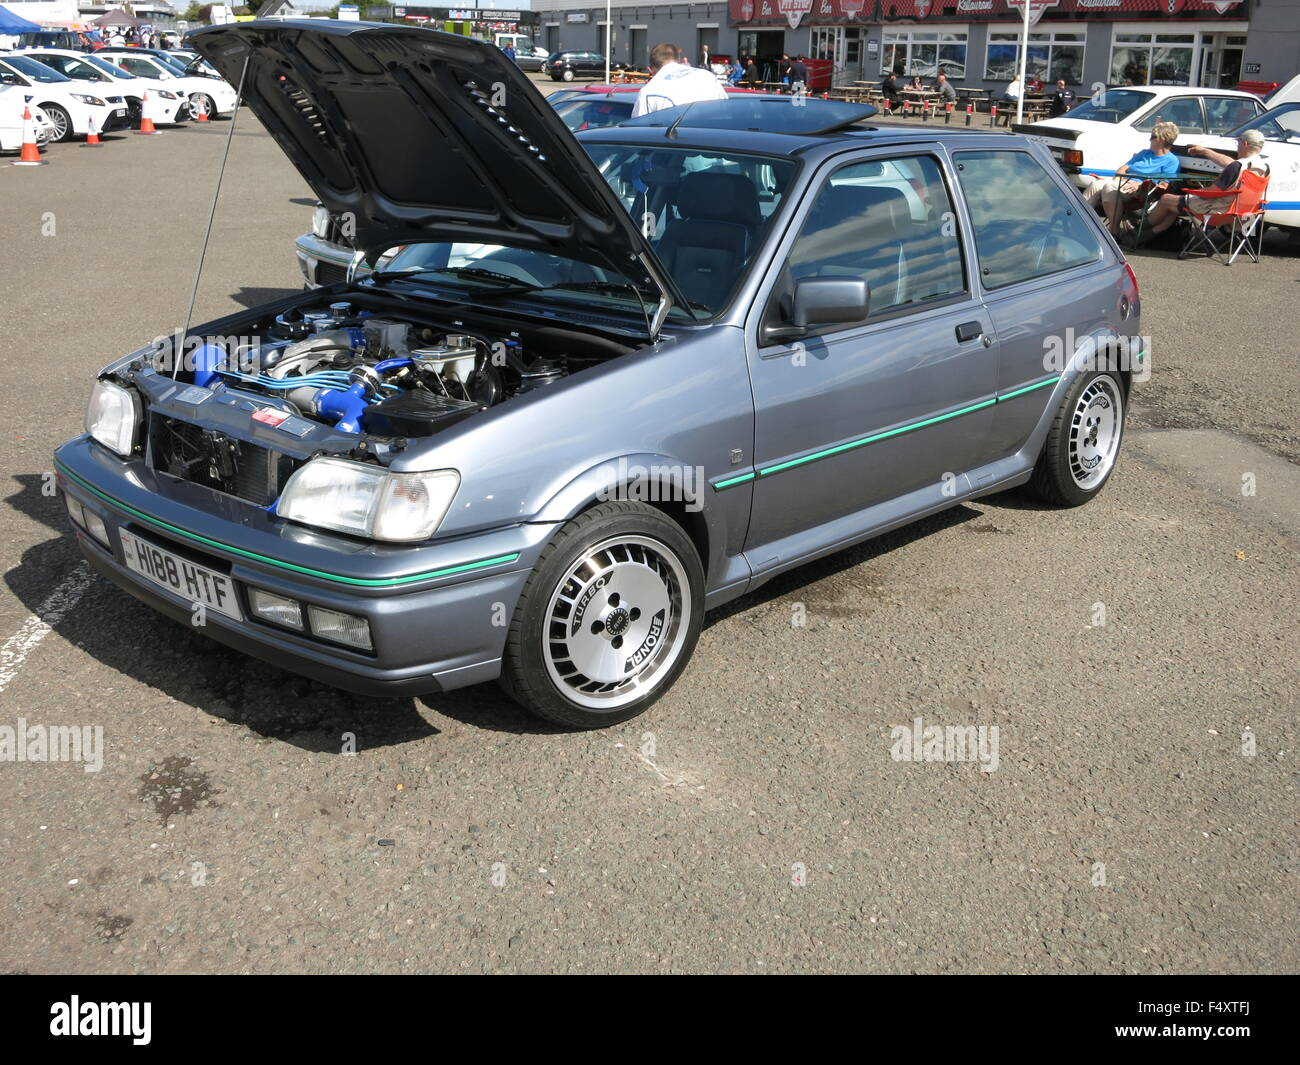 Image Result For Ford Fiesta Xri